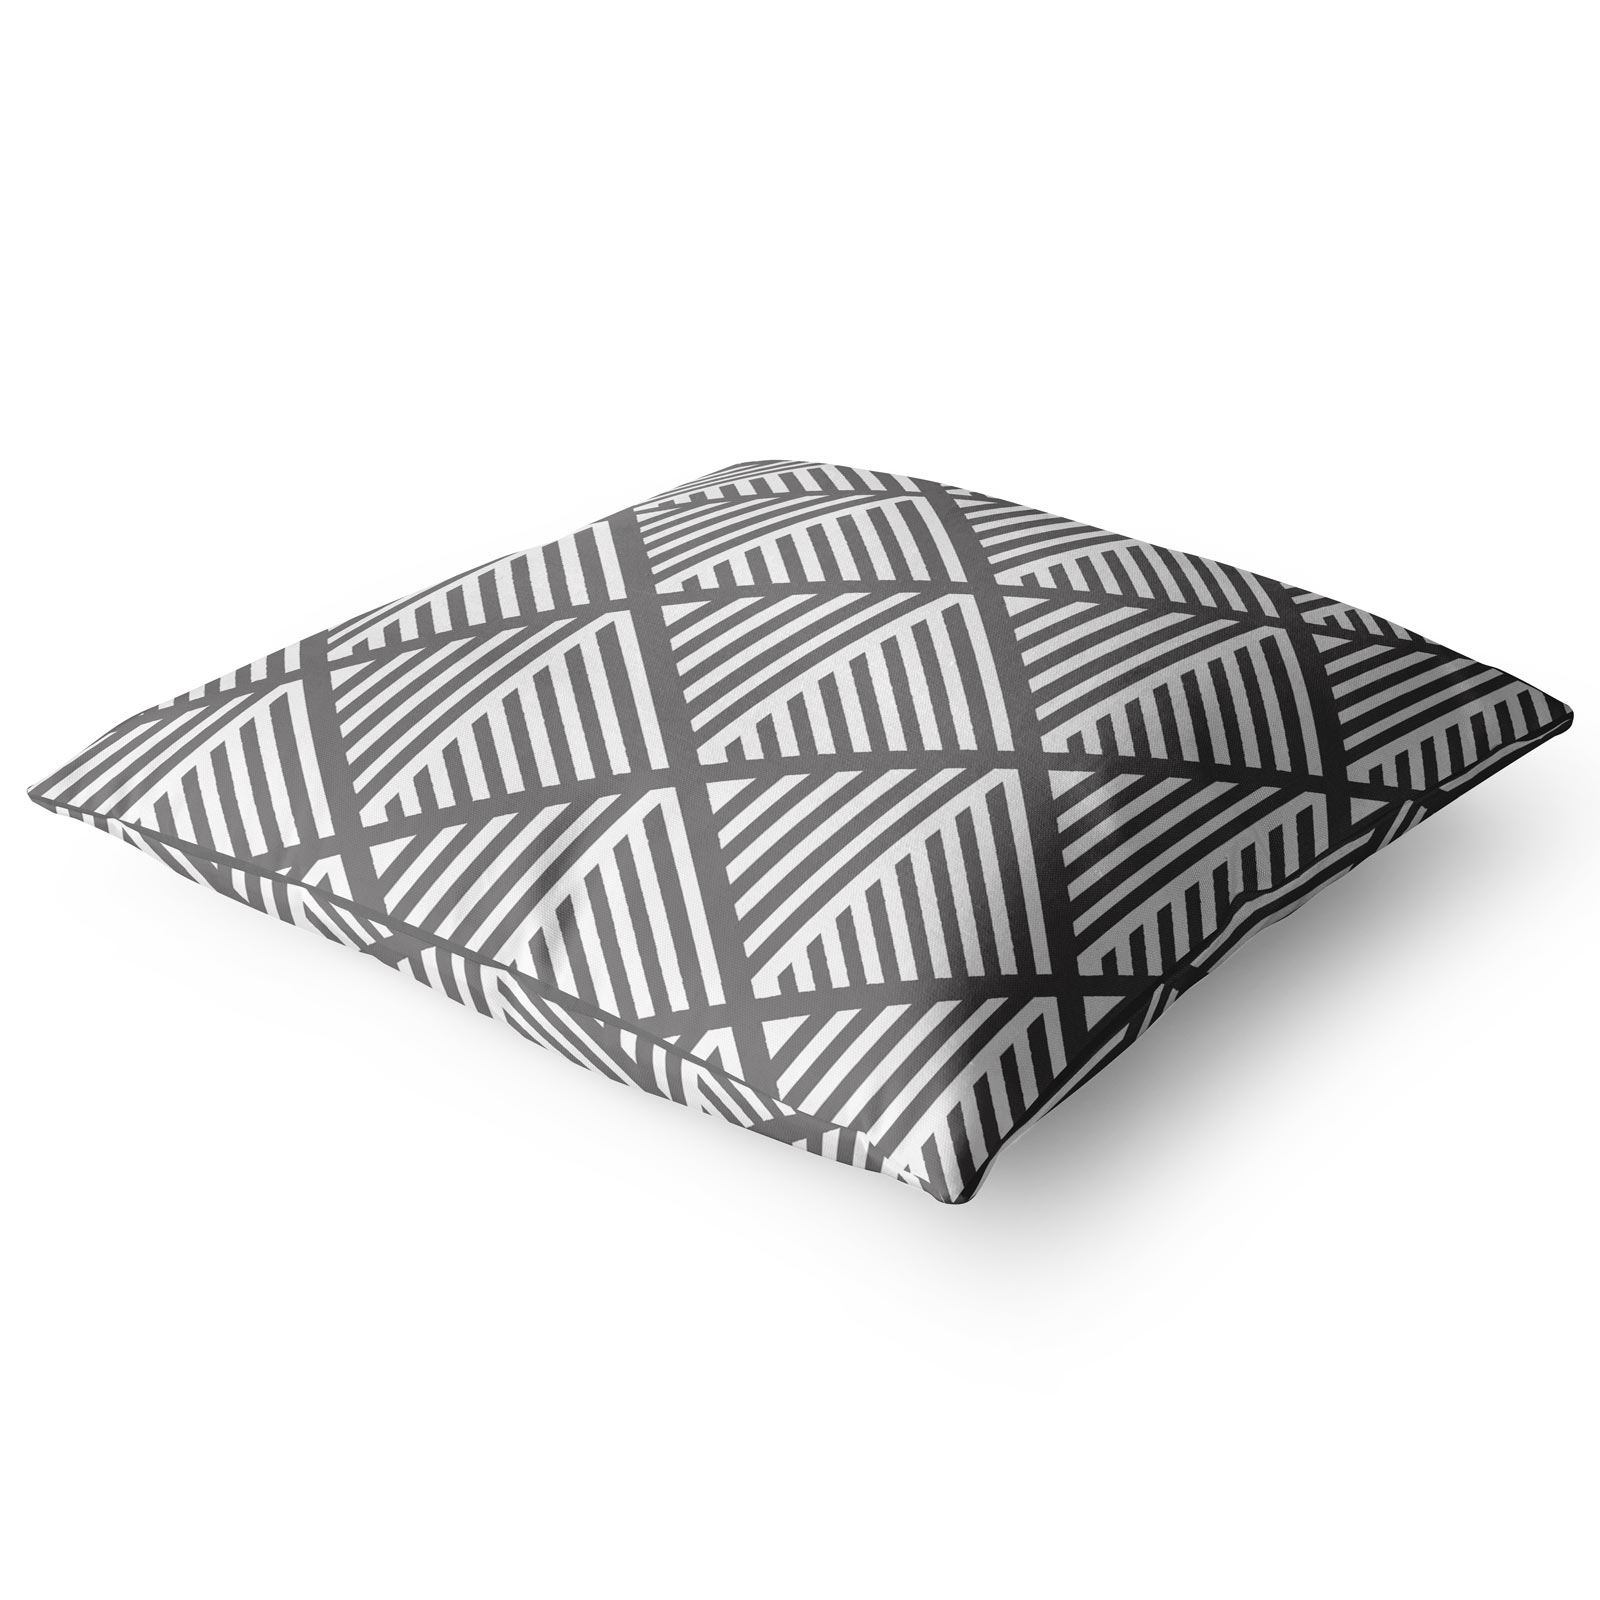 Grey-Ochre-Mustard-Cushion-Cover-Collection-17-034-18-034-Covers-Filled-Cushions thumbnail 33